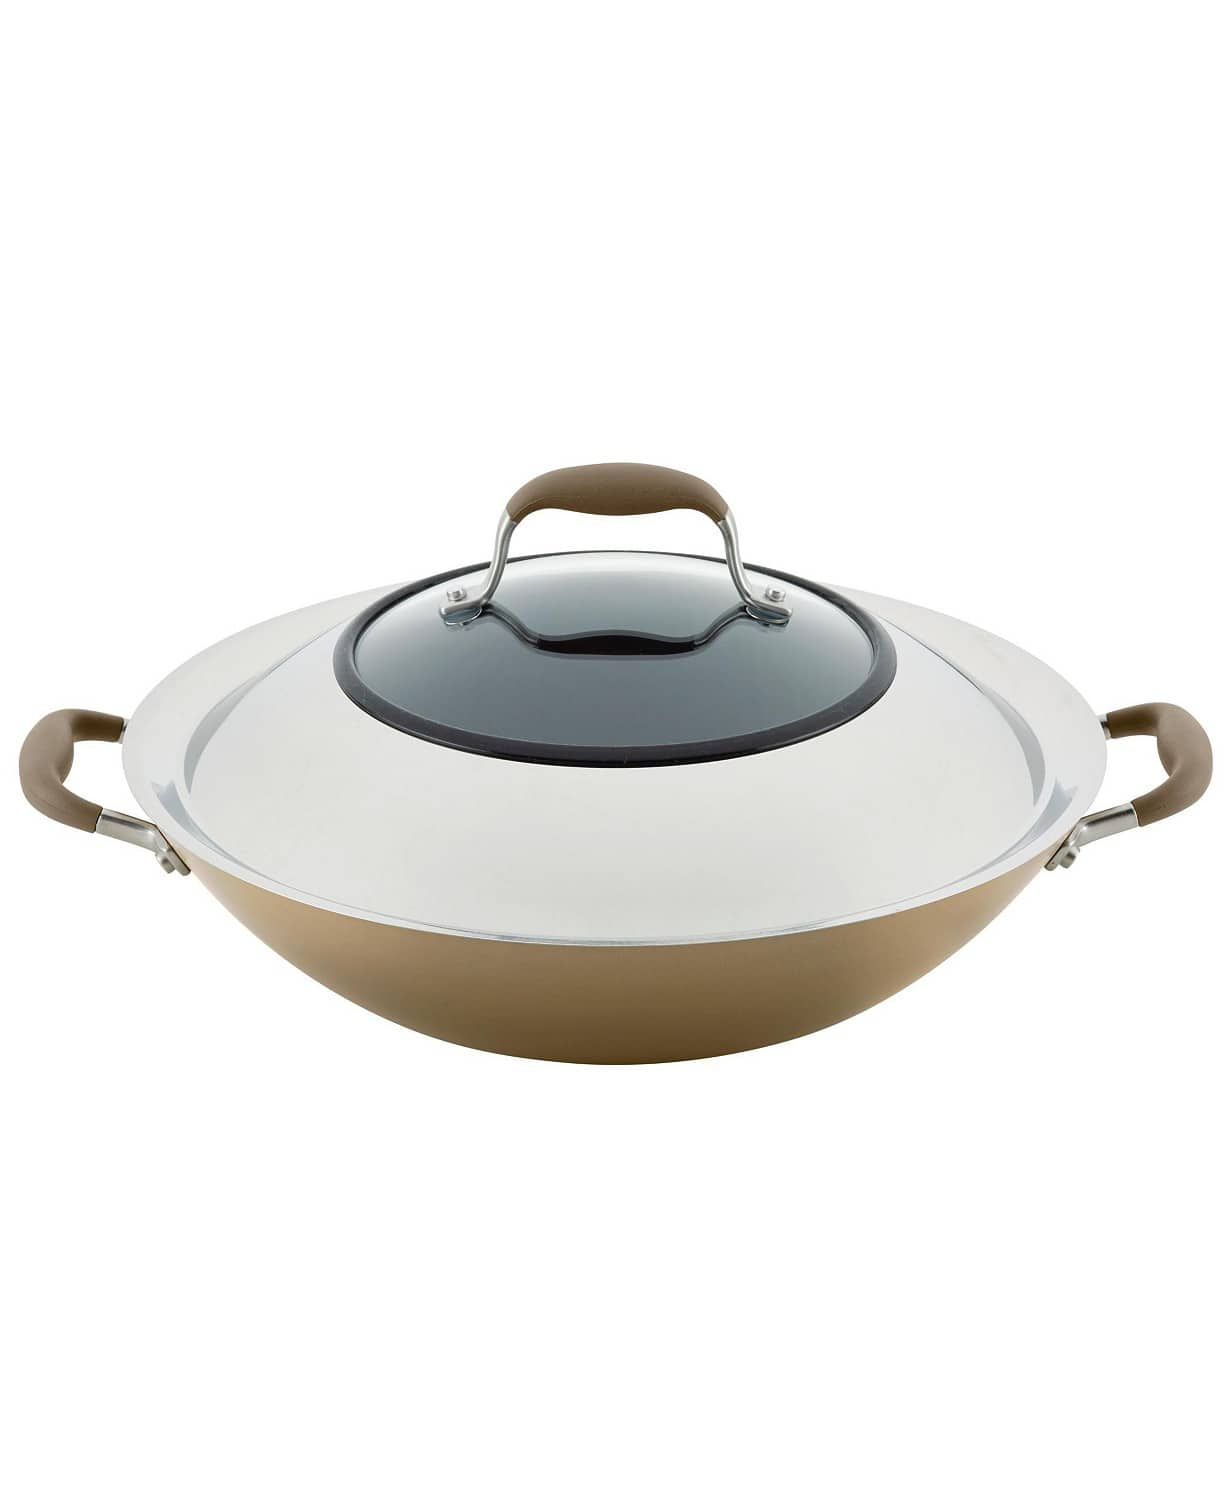 "Anolon Advanced Home Hard-Anodized 14"" Nonstick Wok + Anolon Slotted Turner $31, More + Free shipping"